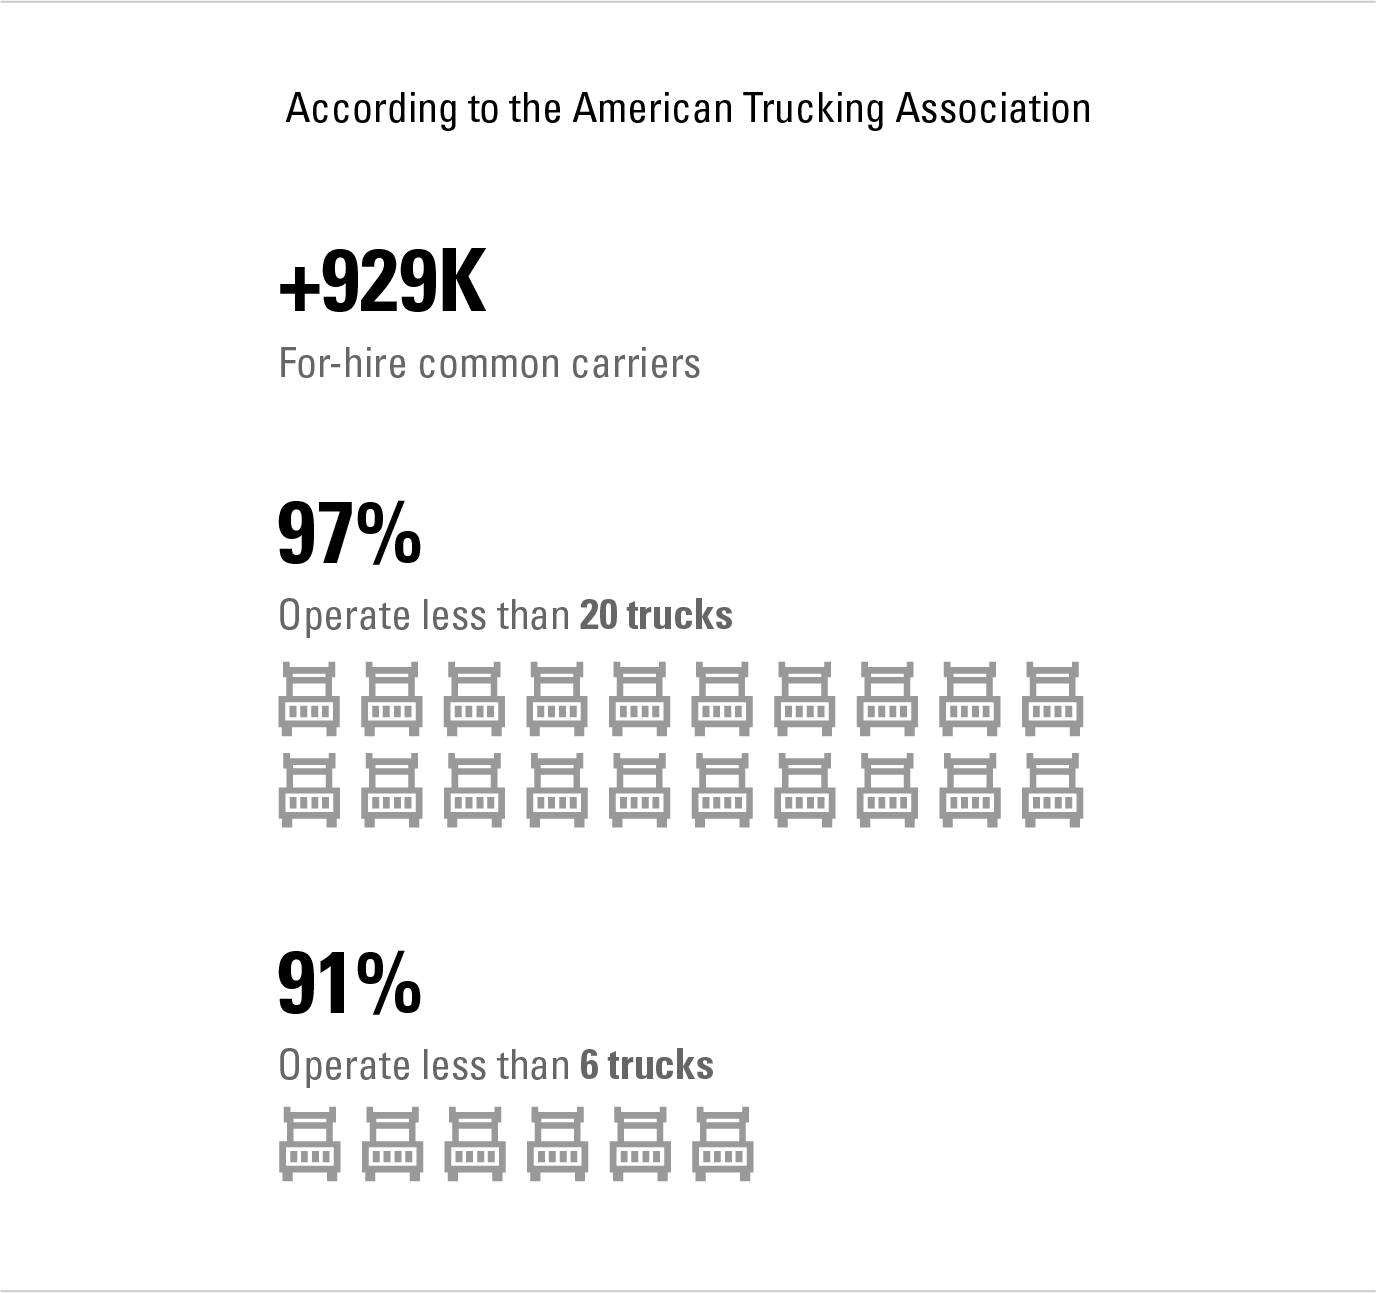 U.S. Truckload Market, carrier fragmentation, number of carriers by size